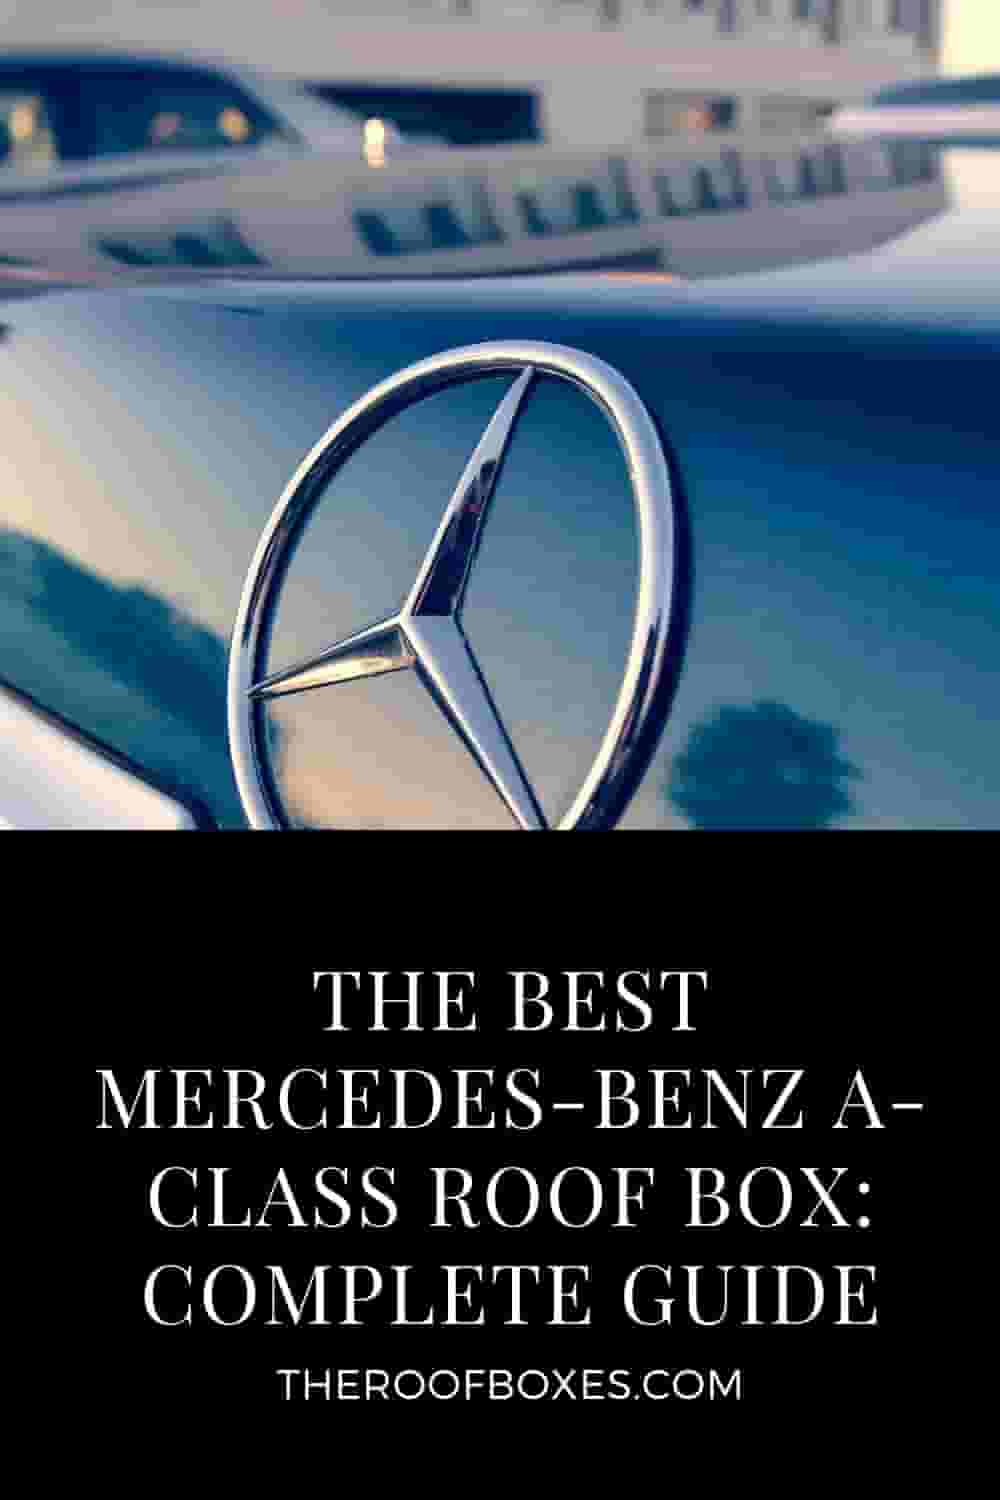 Mercedes-Benz A-Class Roof Box– Reviews and Comparison